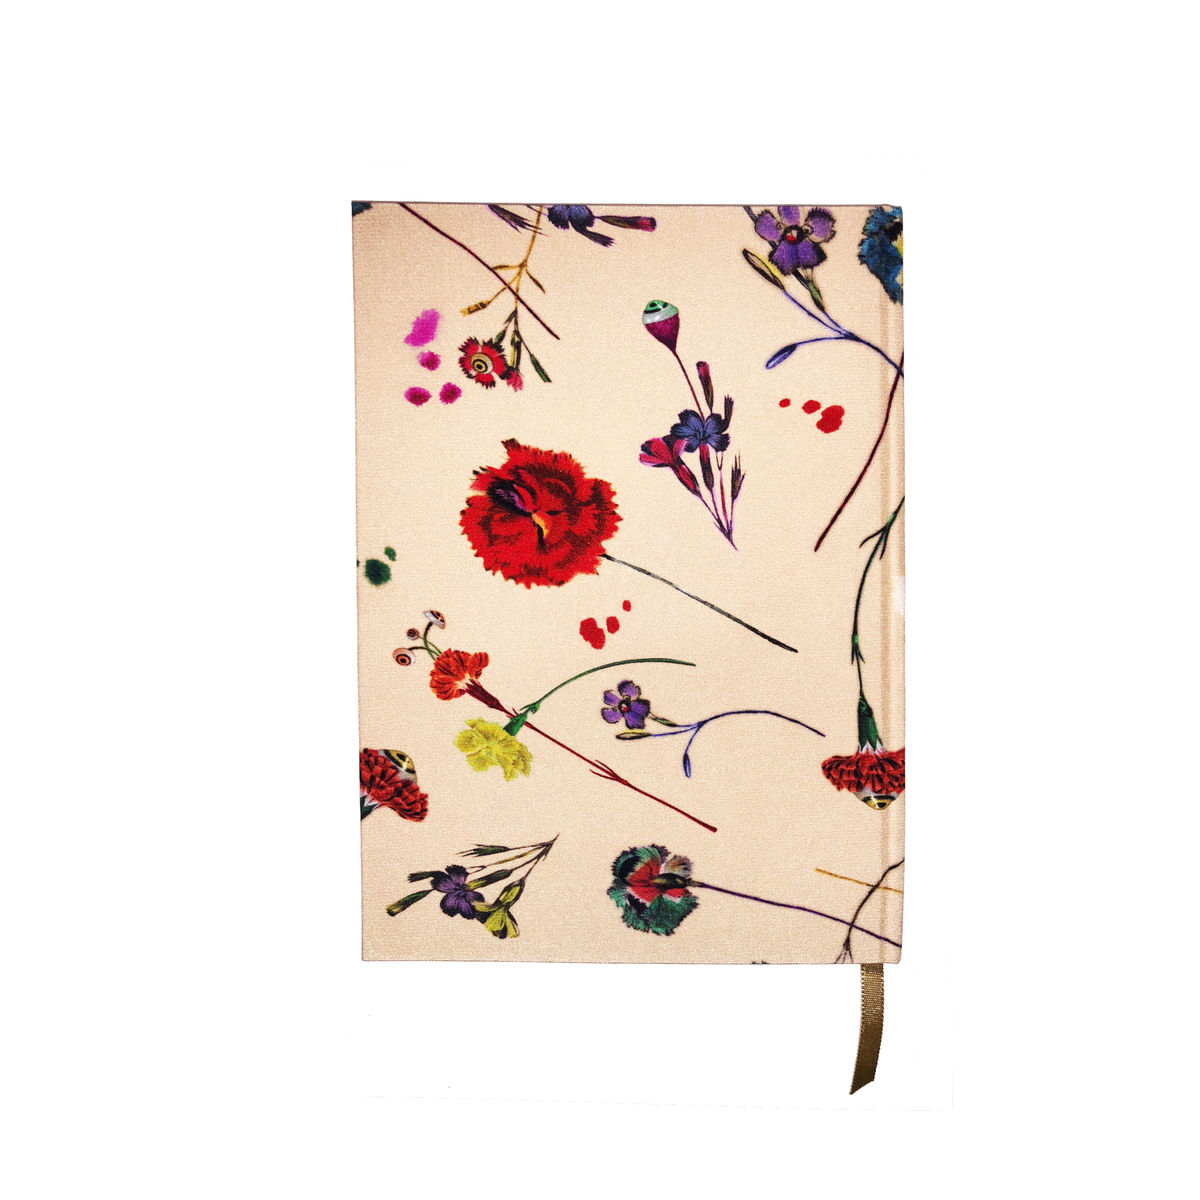 Floral Explosion Print A5 note book - product images  of